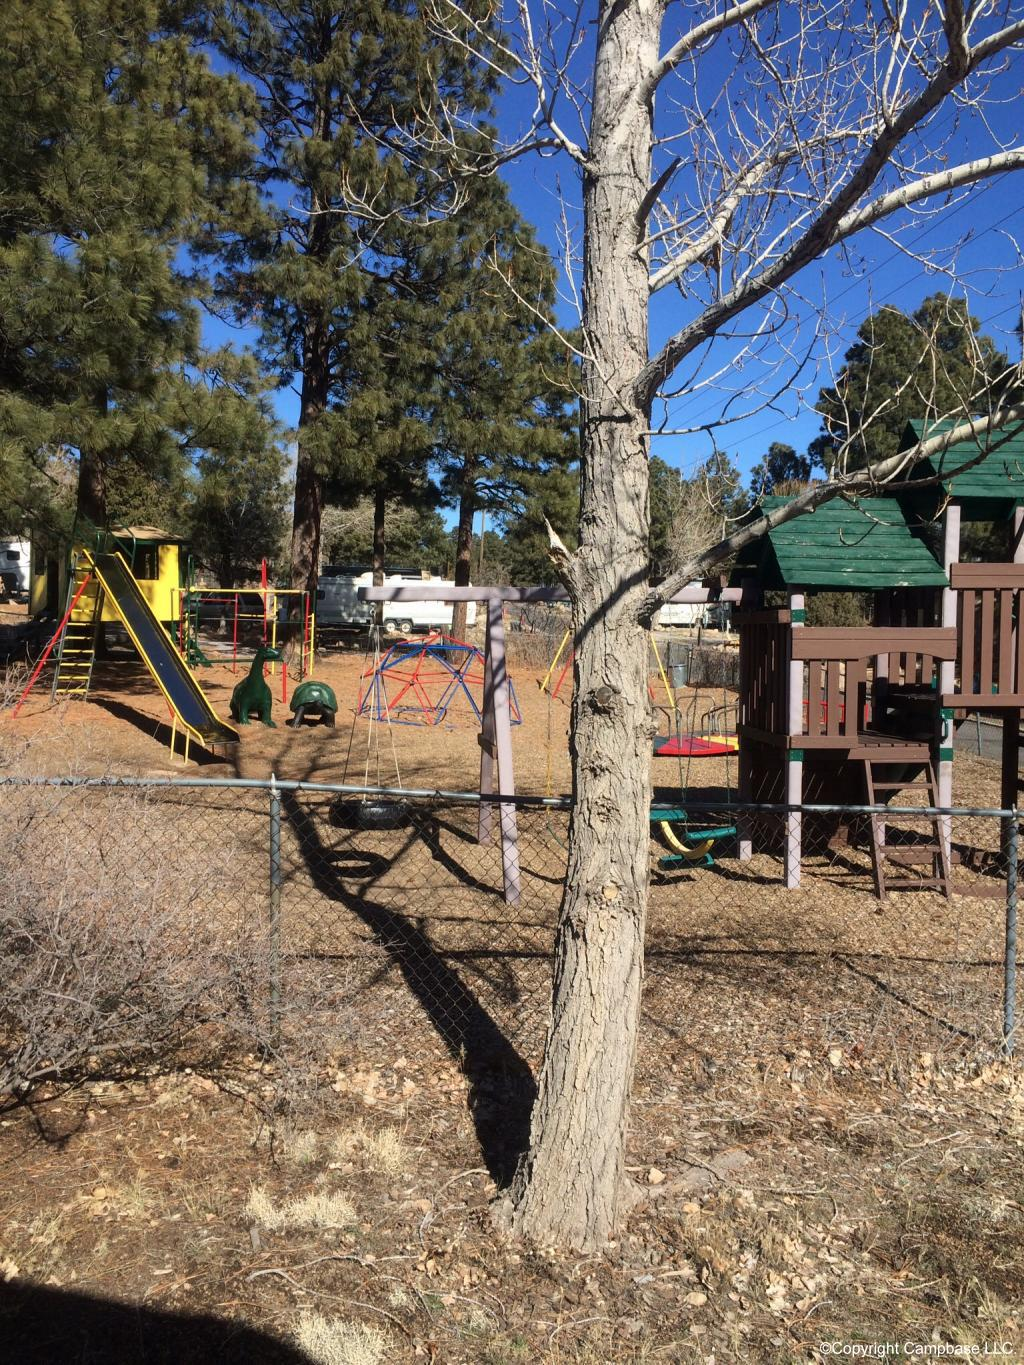 Flagstaff Koa Campground Flagstaff Arizona